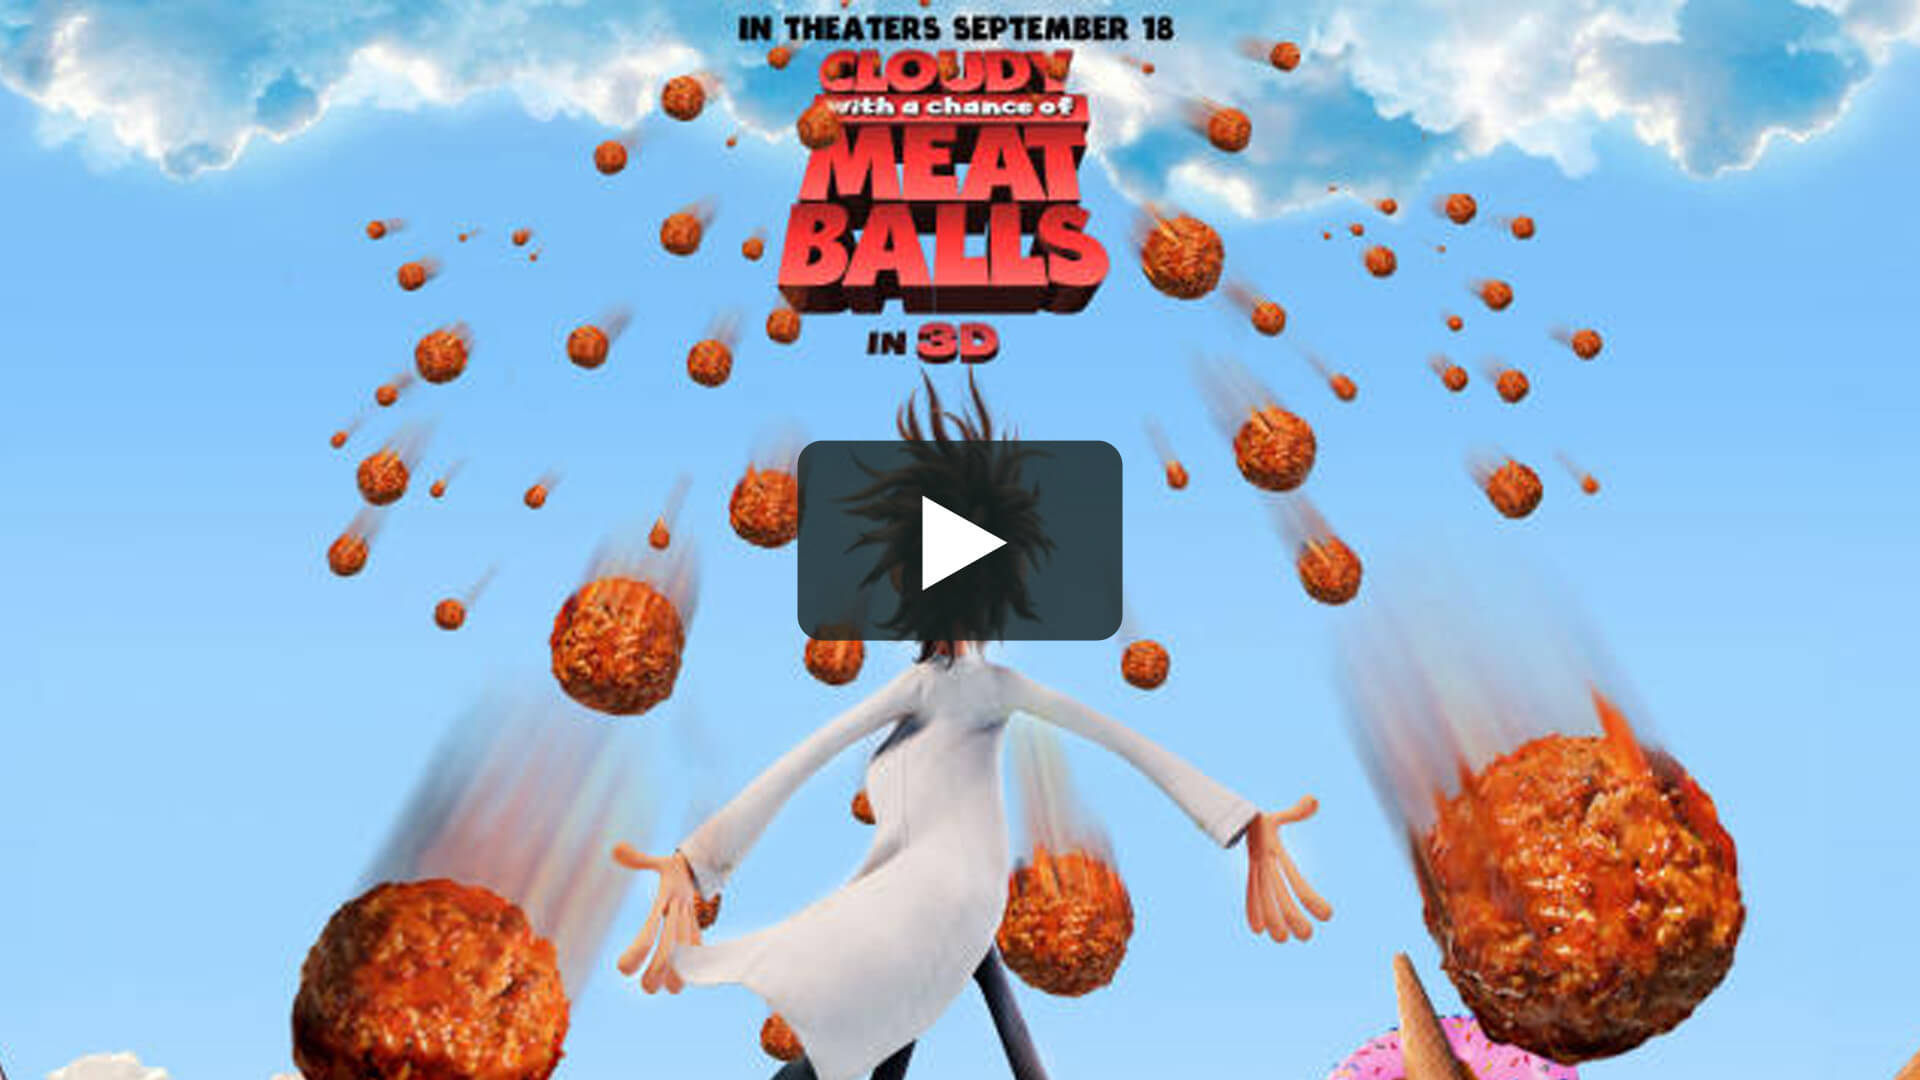 Cloudy with a Chance of Meatballs - 天降美食